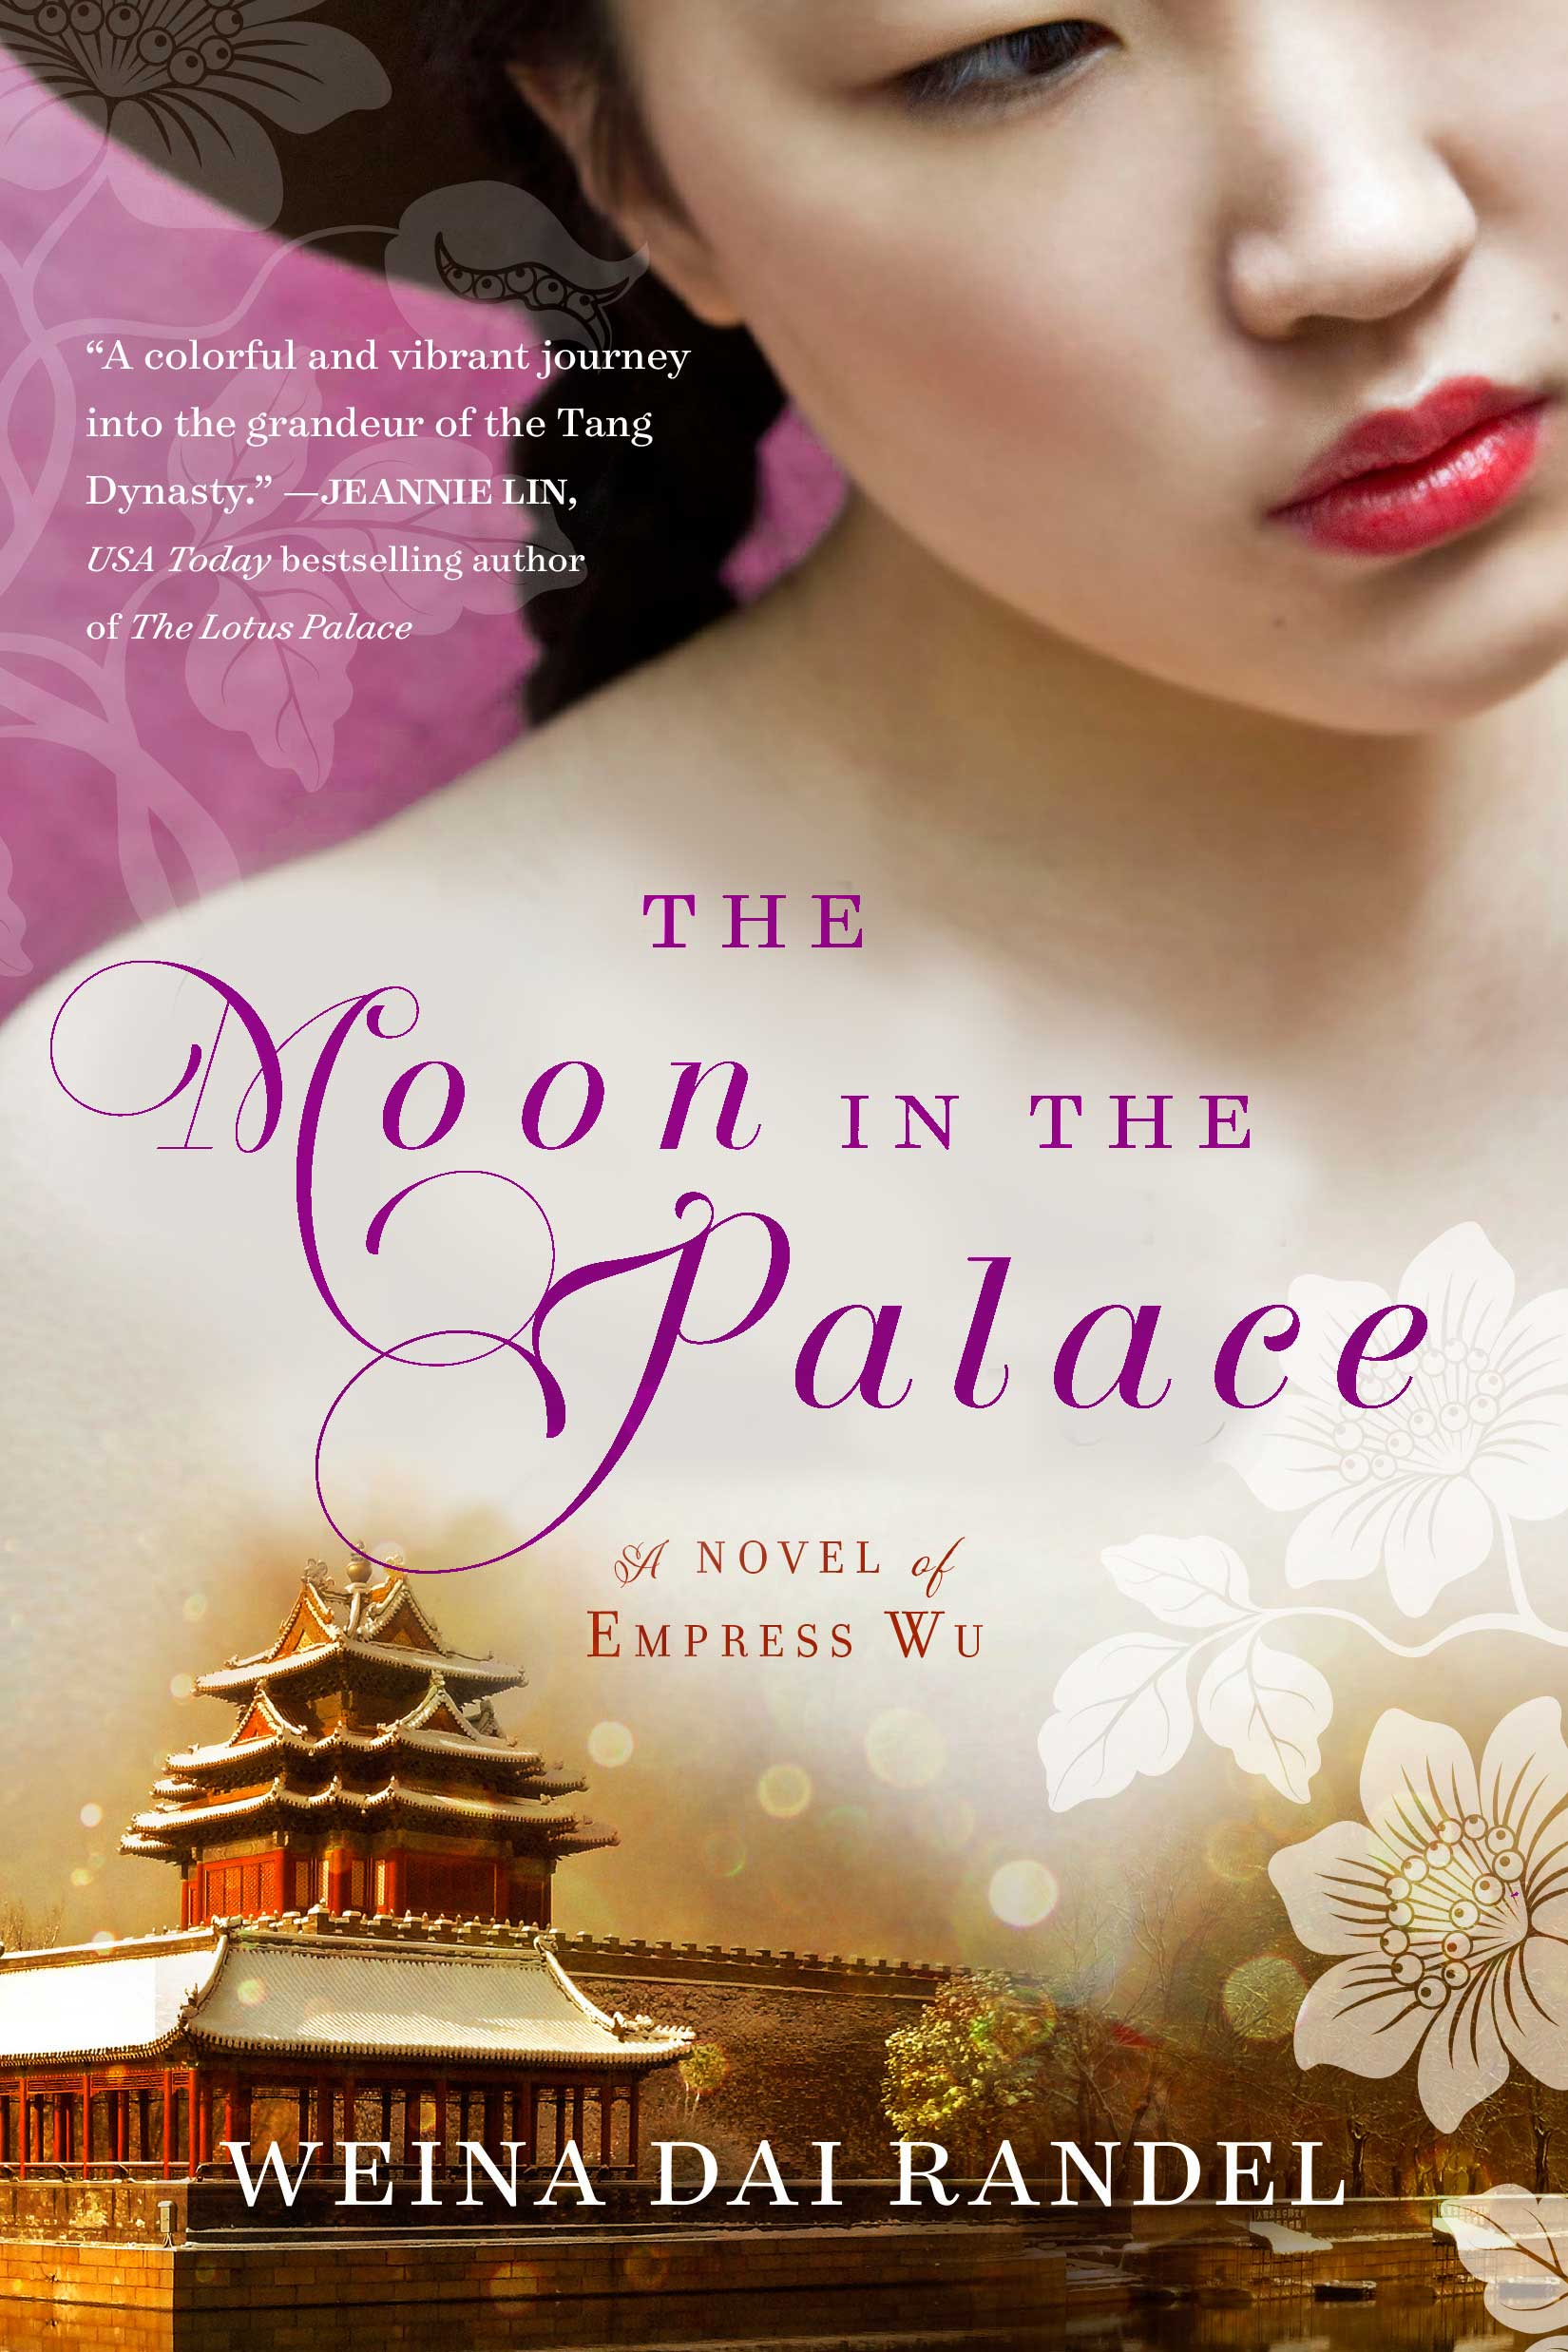 Buchbesprechung: The Moon in the Palace